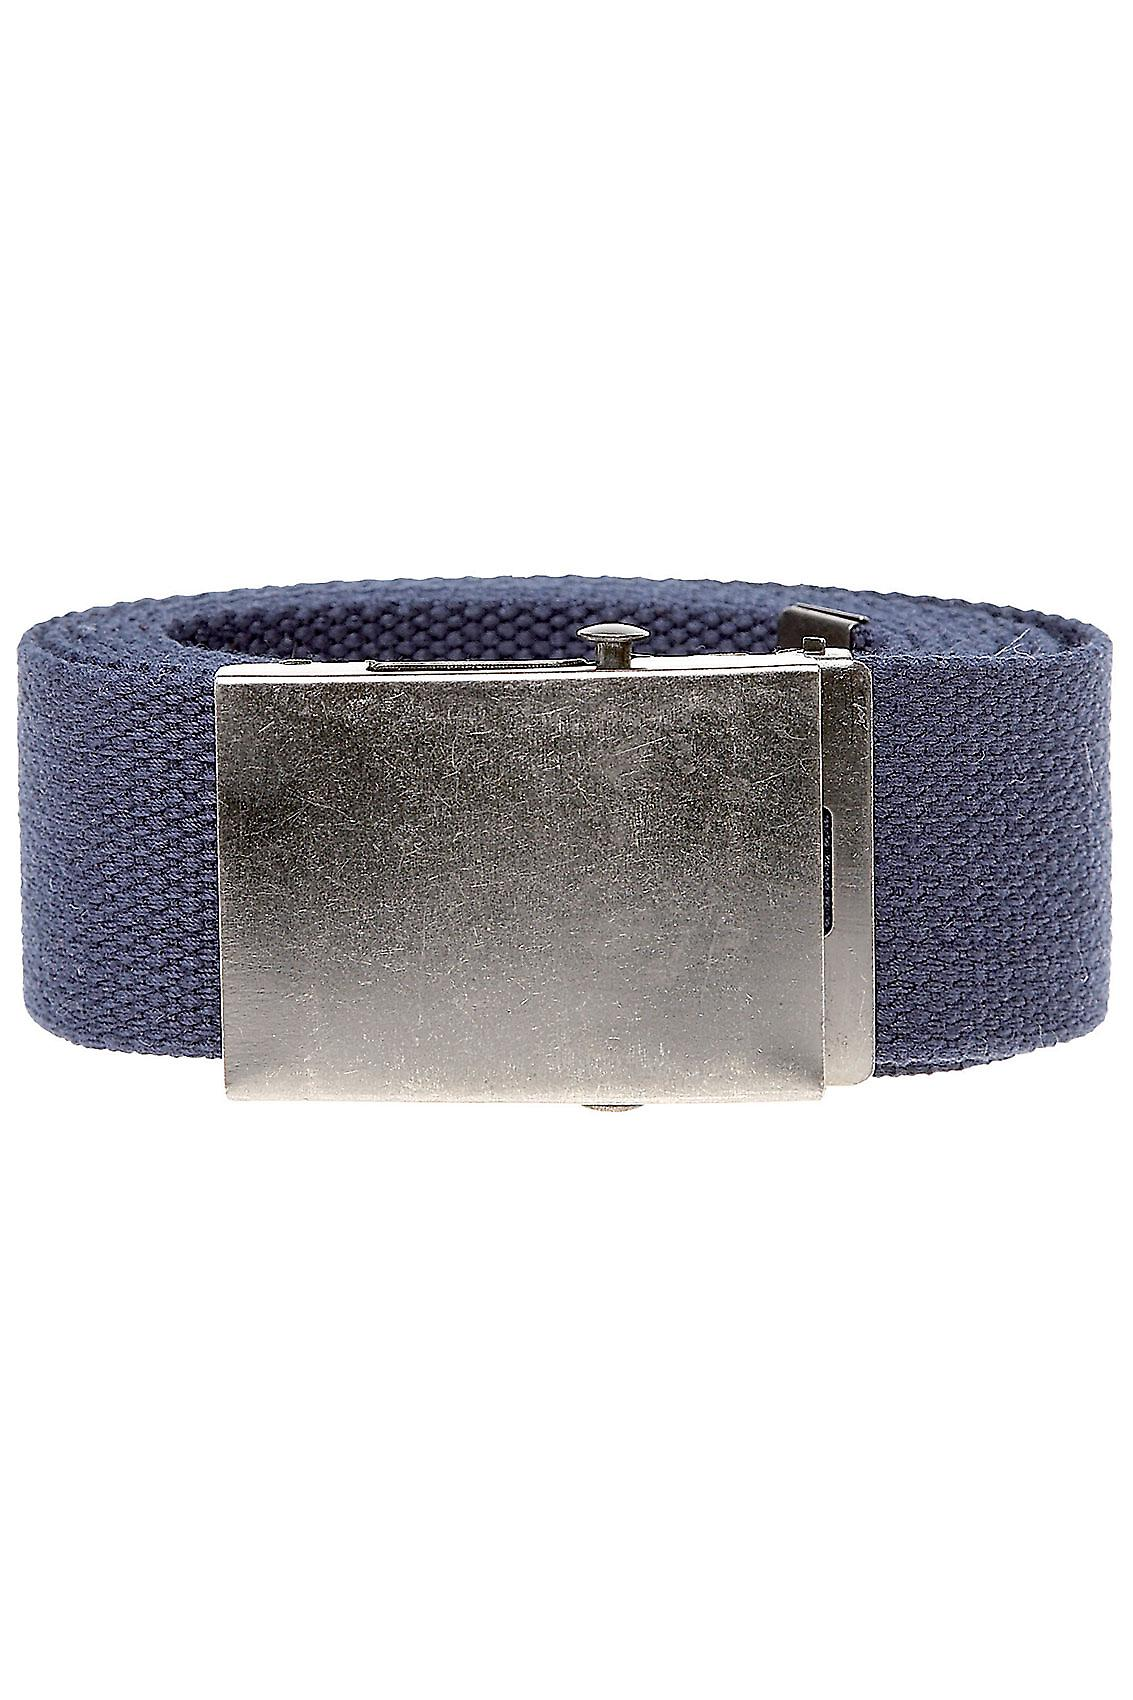 D555 King Size Navy Webbing Belt